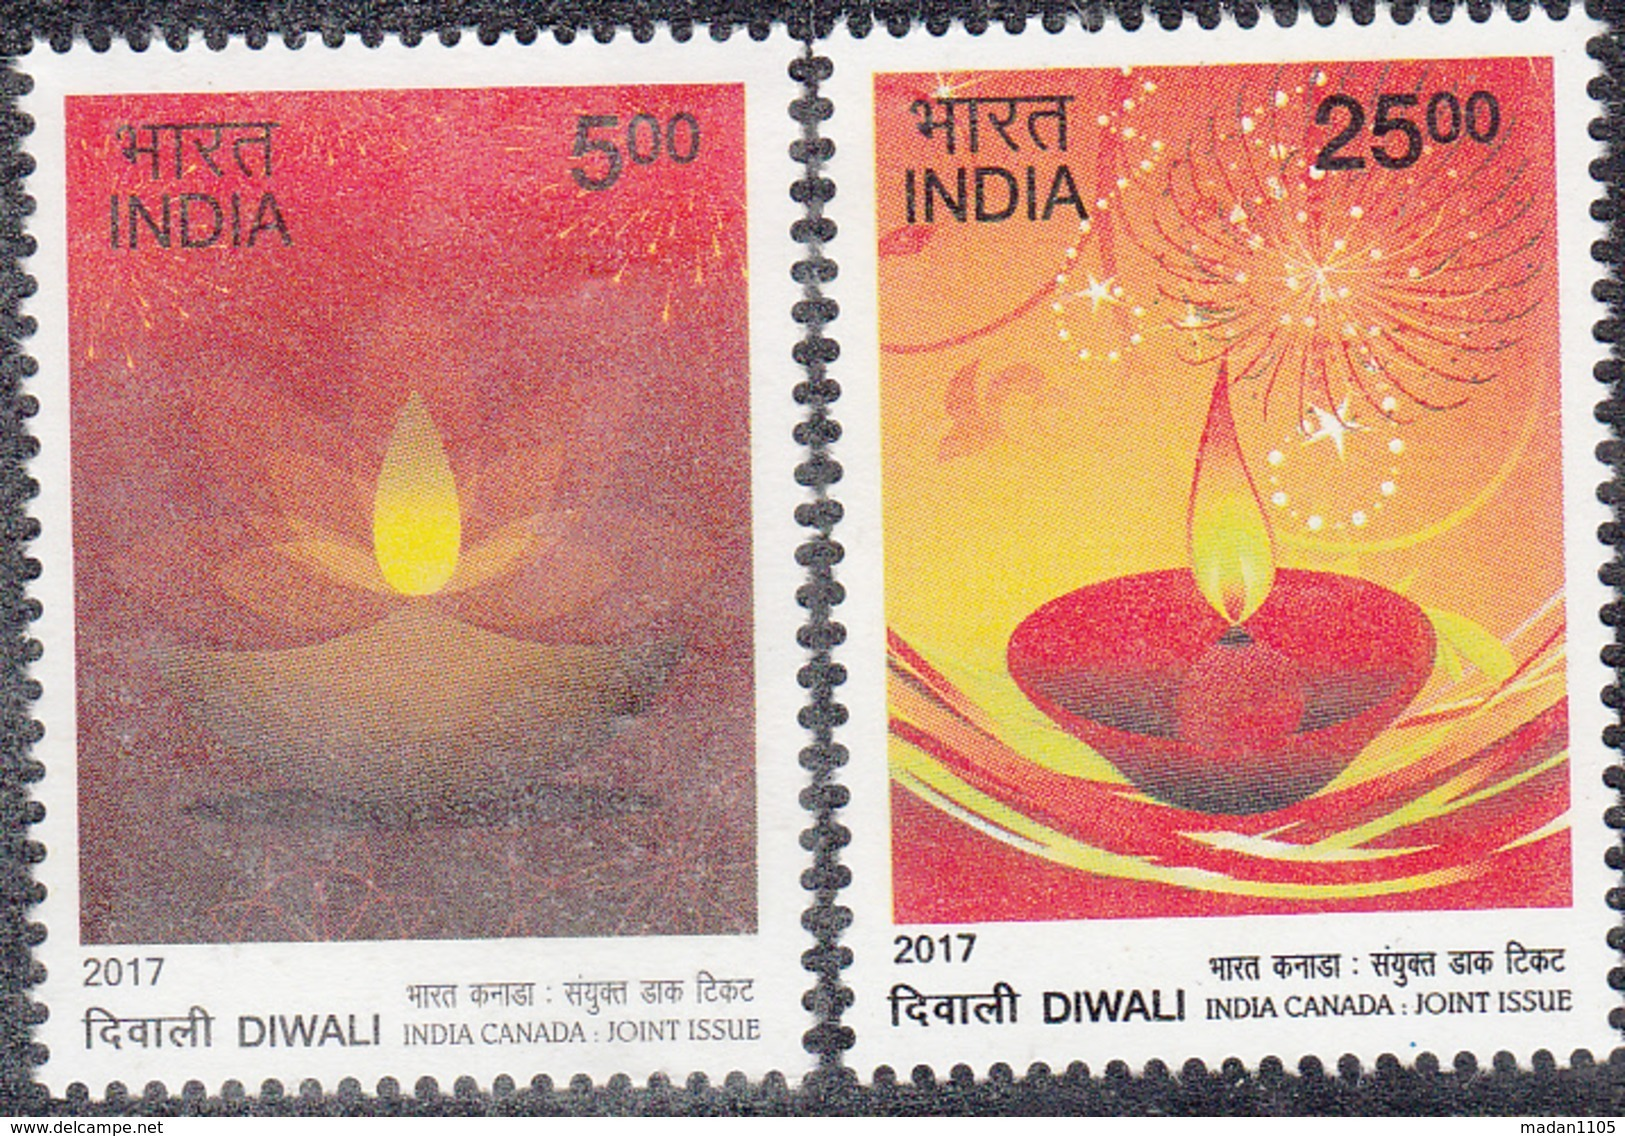 INDIA 2017 INDIA CANADA Joint Issue,  Festival Of DIWALI,  Set  2v Complete,, MNH(**). - India